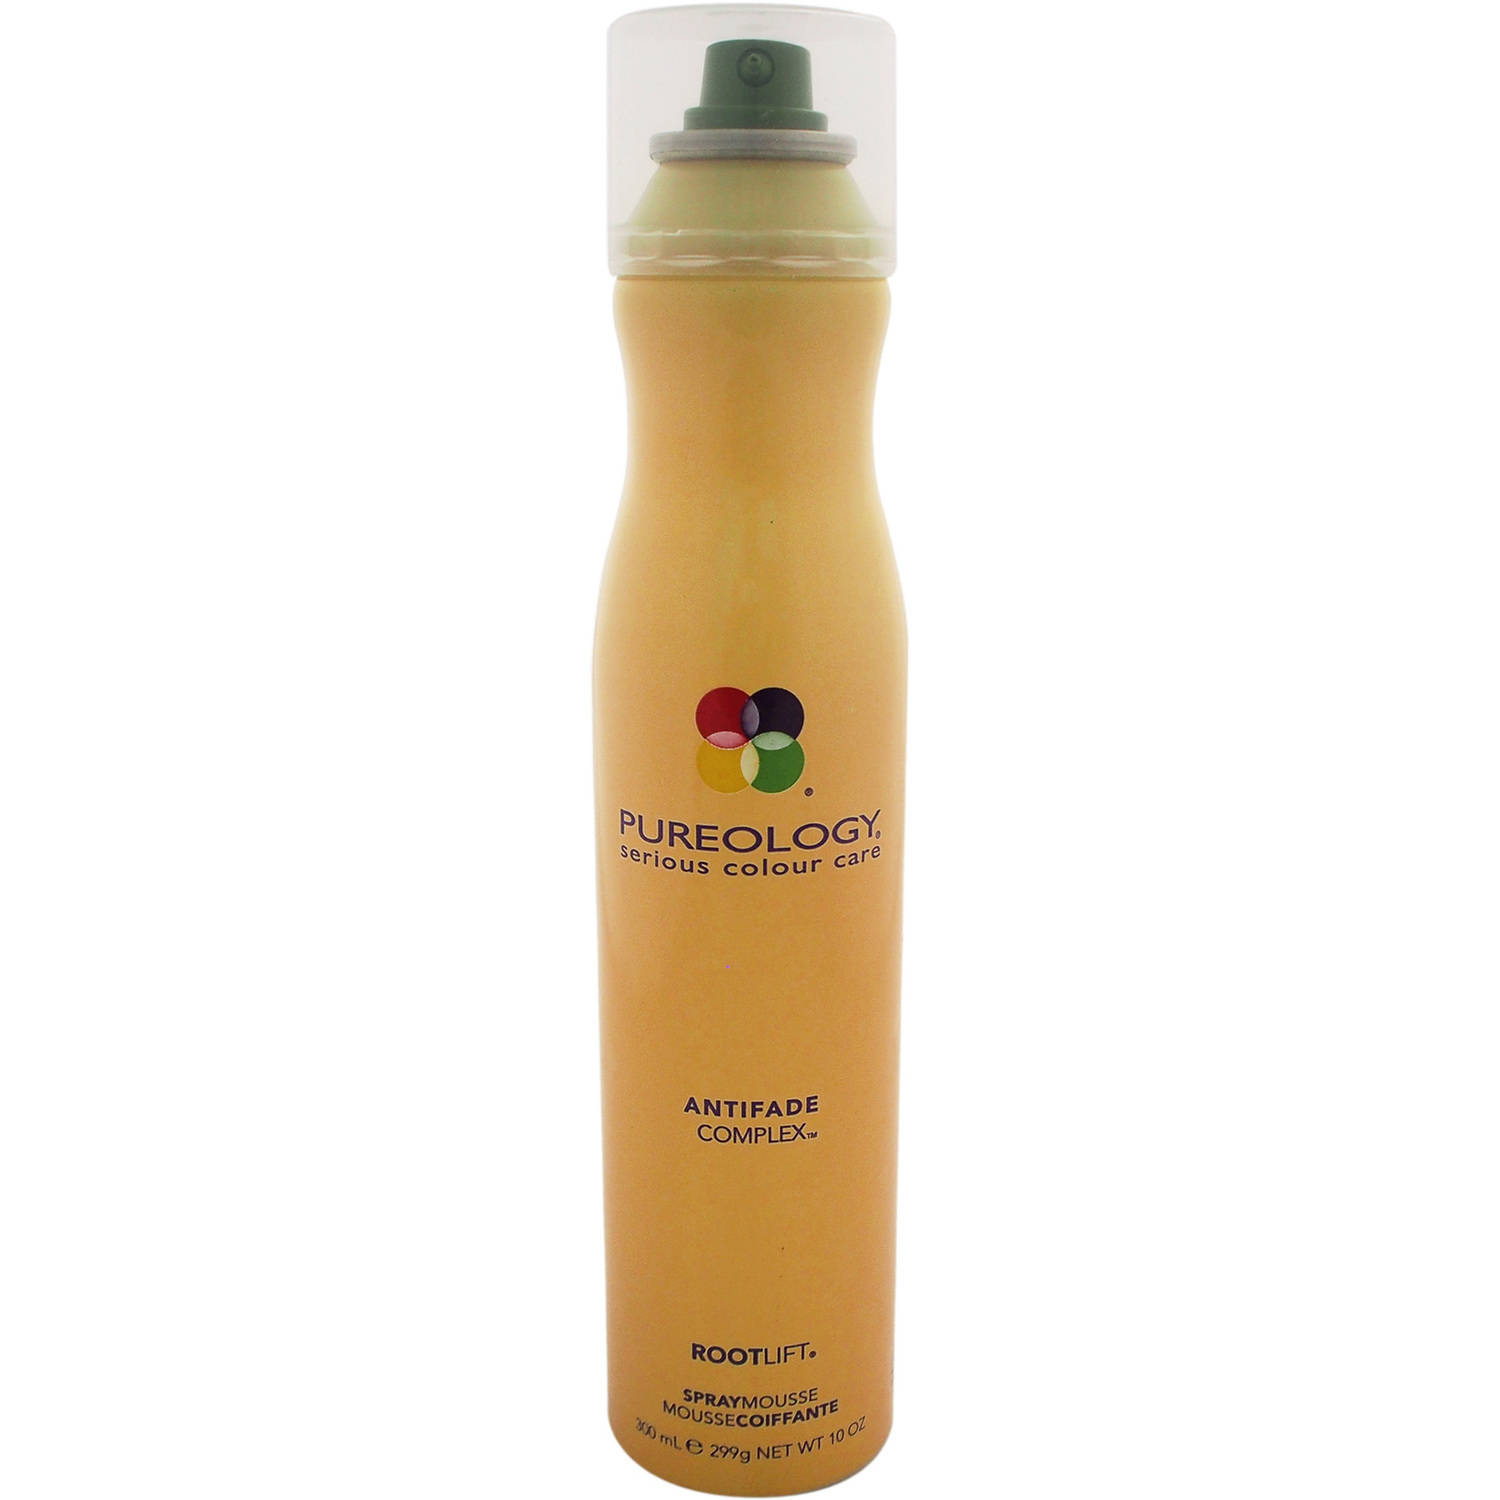 Pureology - Pureology Antifade Complex Root Lift Hairspray ...